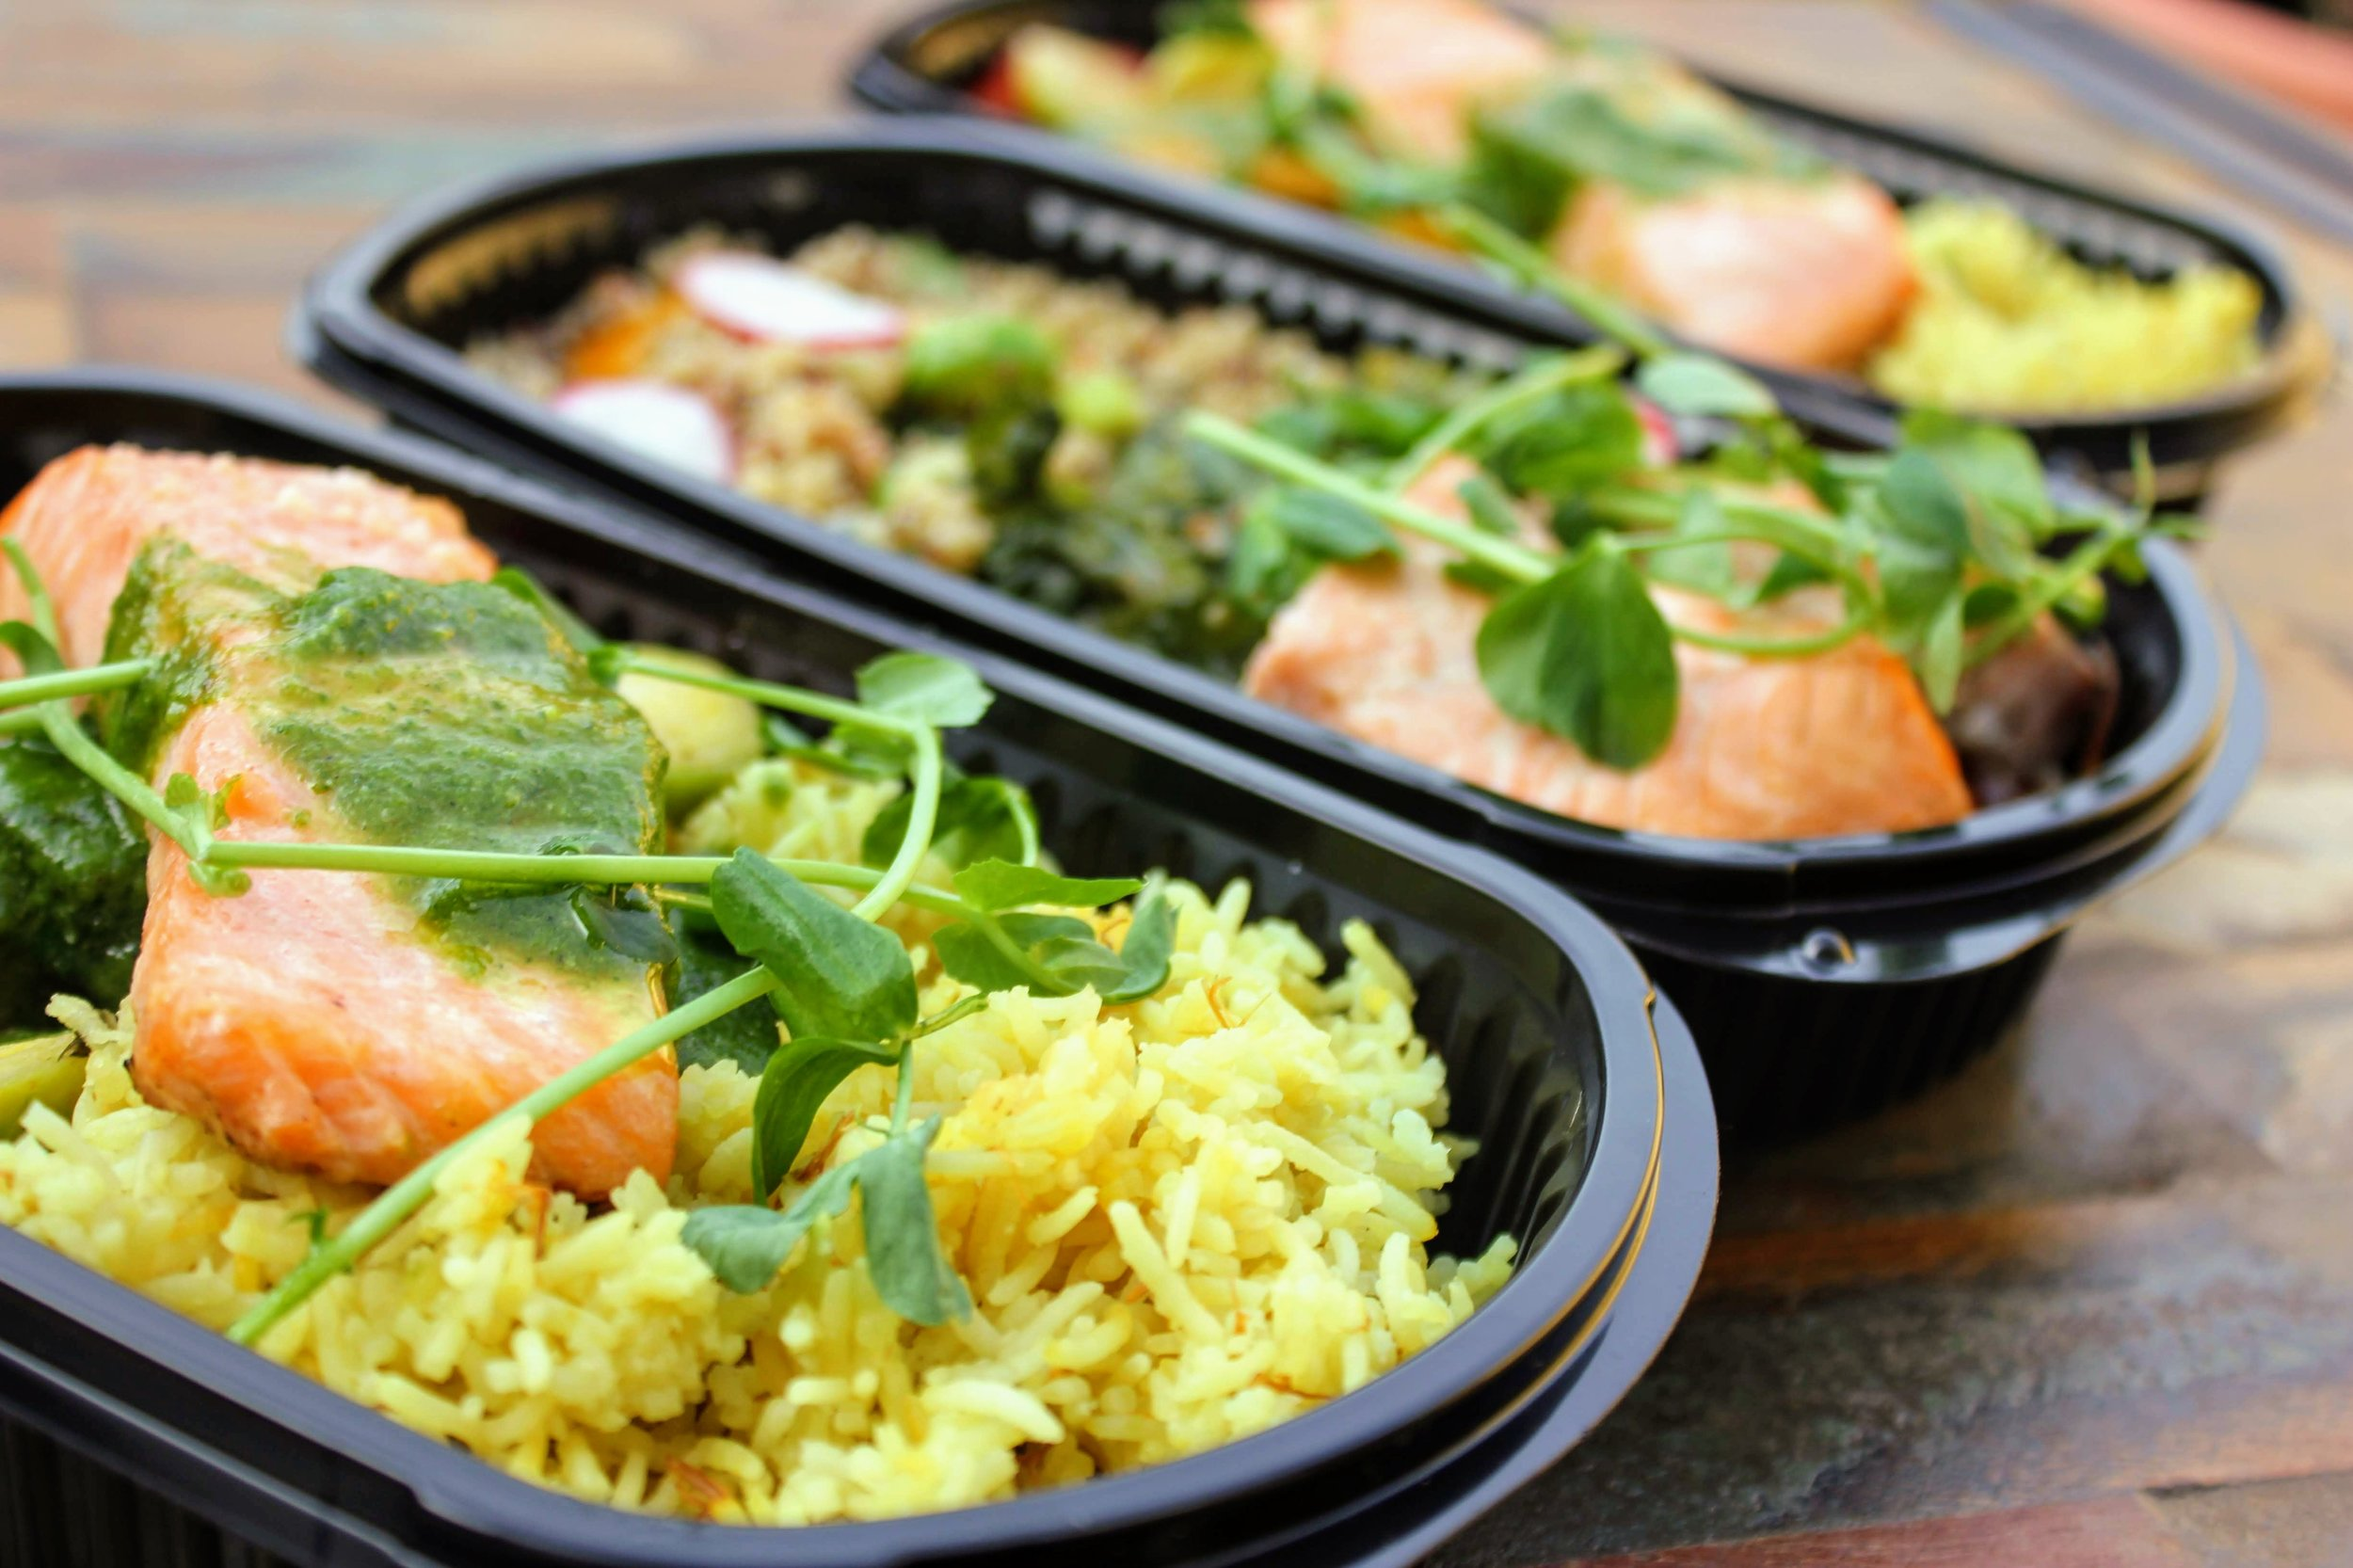 Get 25% off your first Buff Body Meals order -